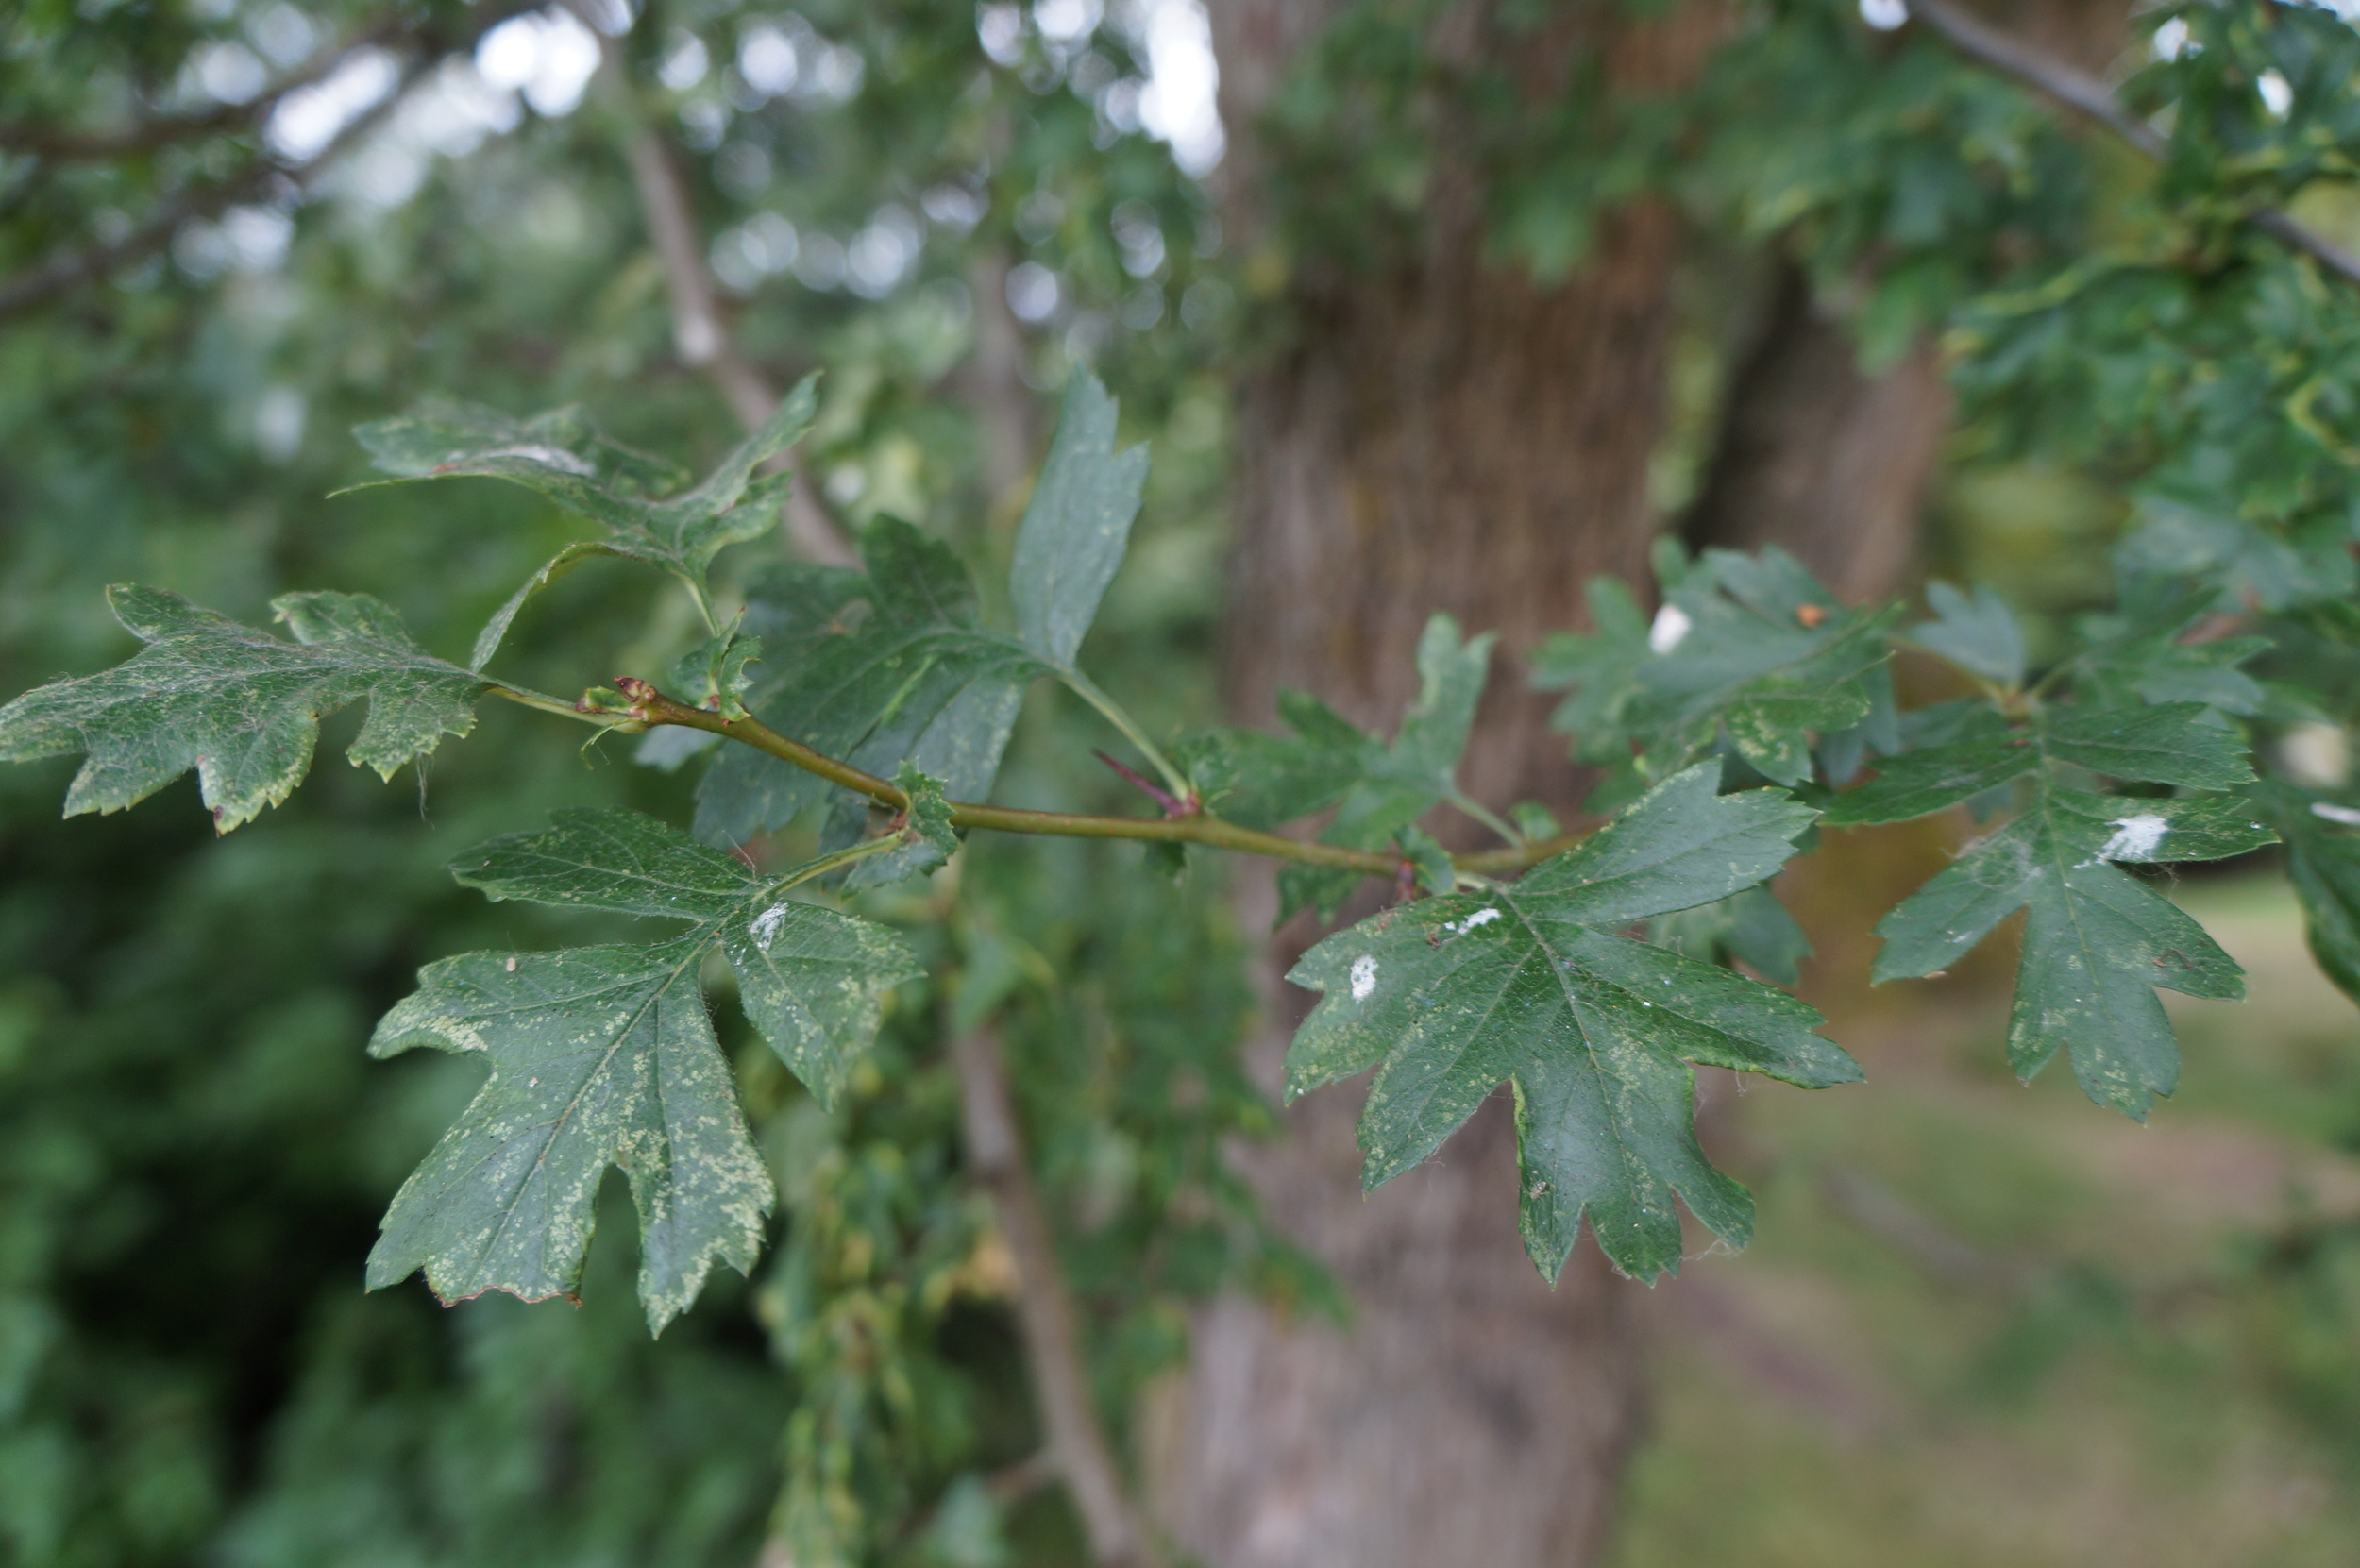 The  noxious  common hawthorn /  Crataegus monogyna   showing it's more divided leaves.